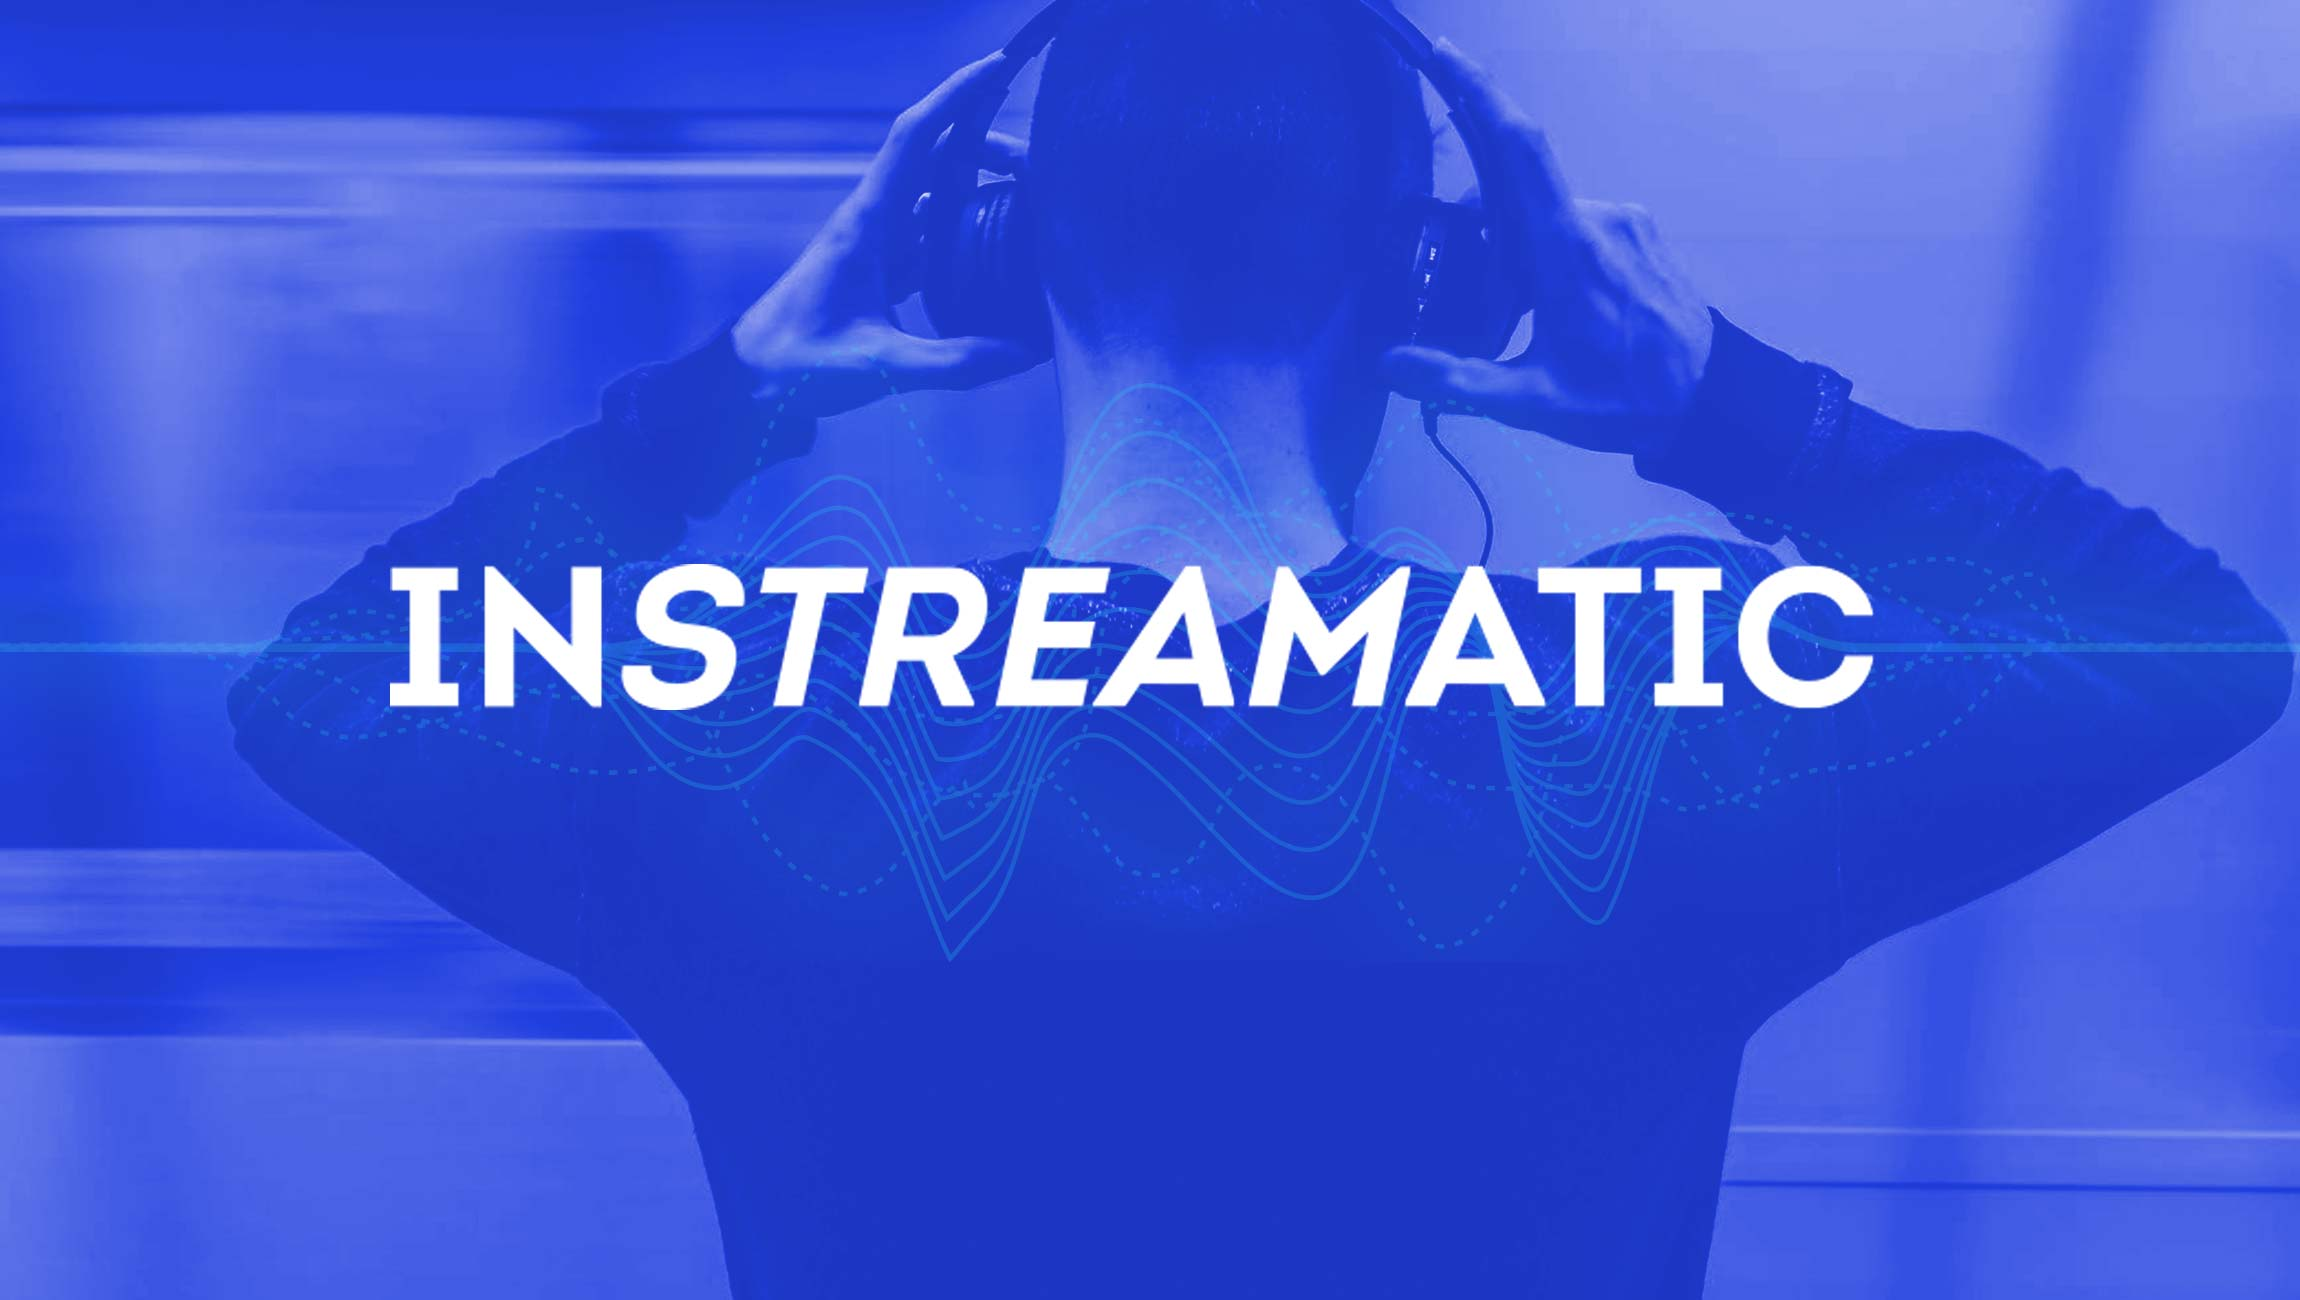 Instreamatic Partners with Triton Digital to Accelerate Voice-Driven Audio Advertising